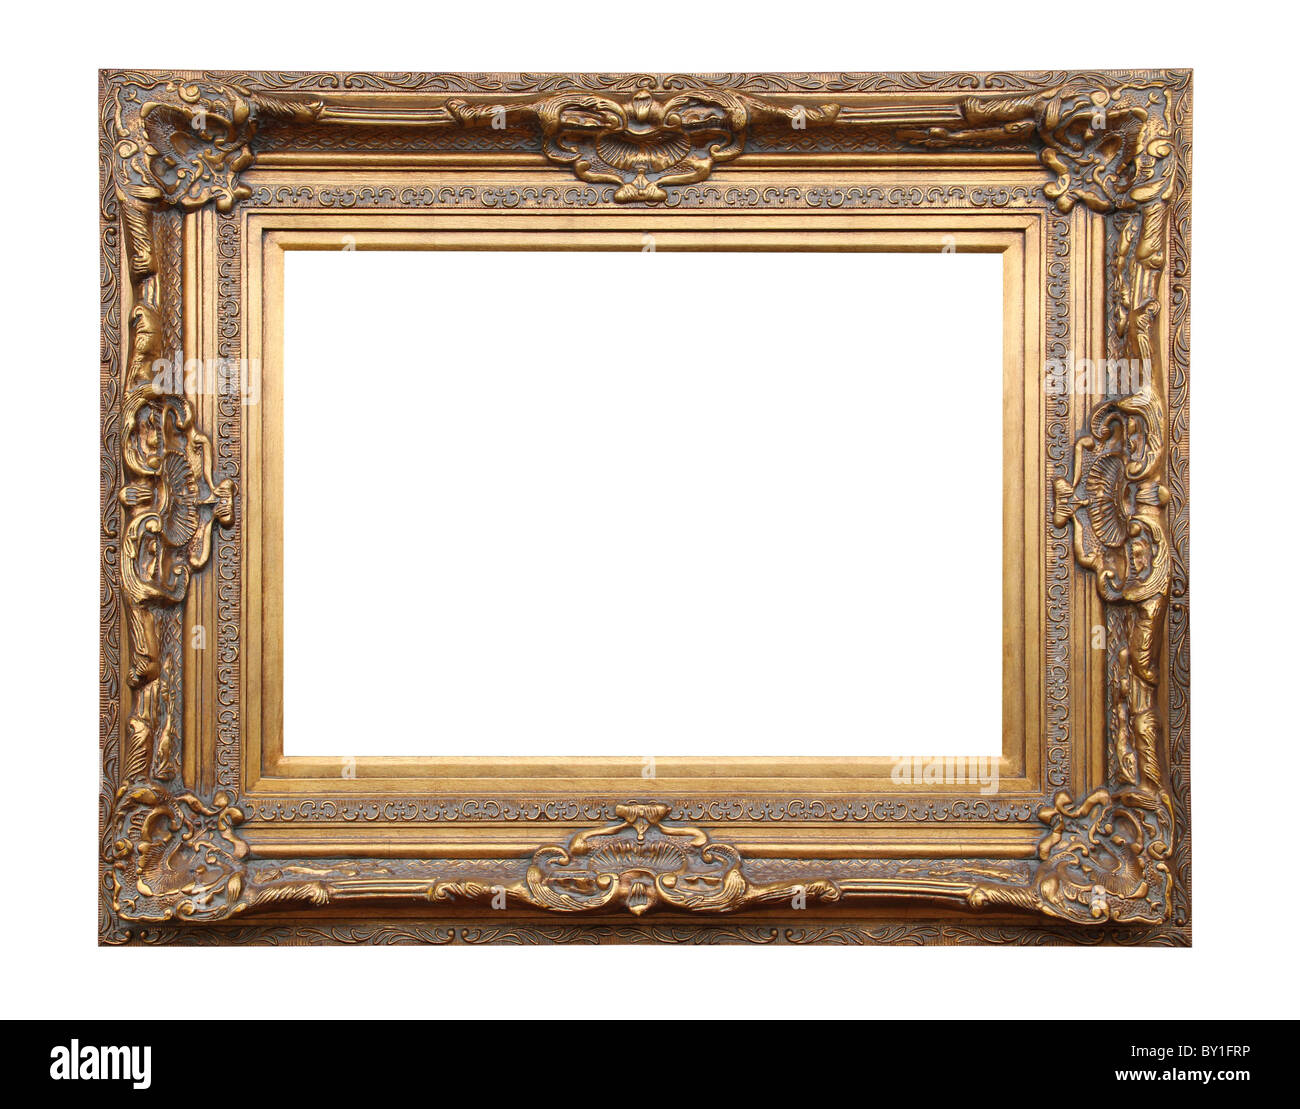 Picture gold frame with a decorative pattern. - Stock Image